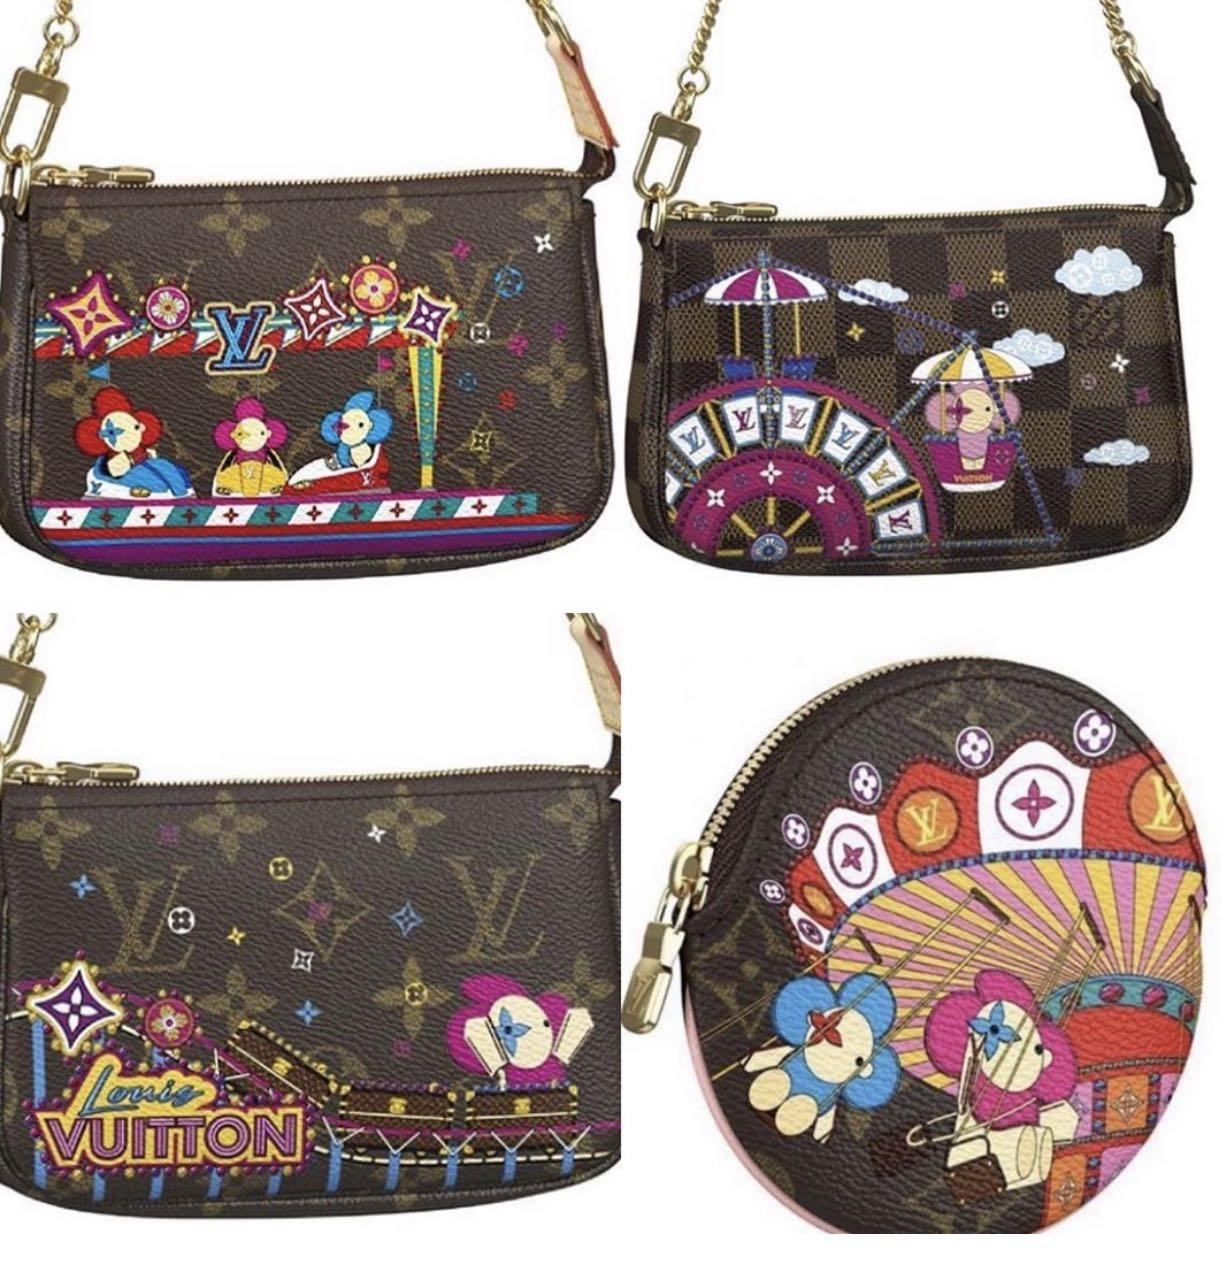 Louis Vuitton Christmas Animation 2020 💕Preorder Louis Vuitton Christmas Animation Mini Pochette 2020